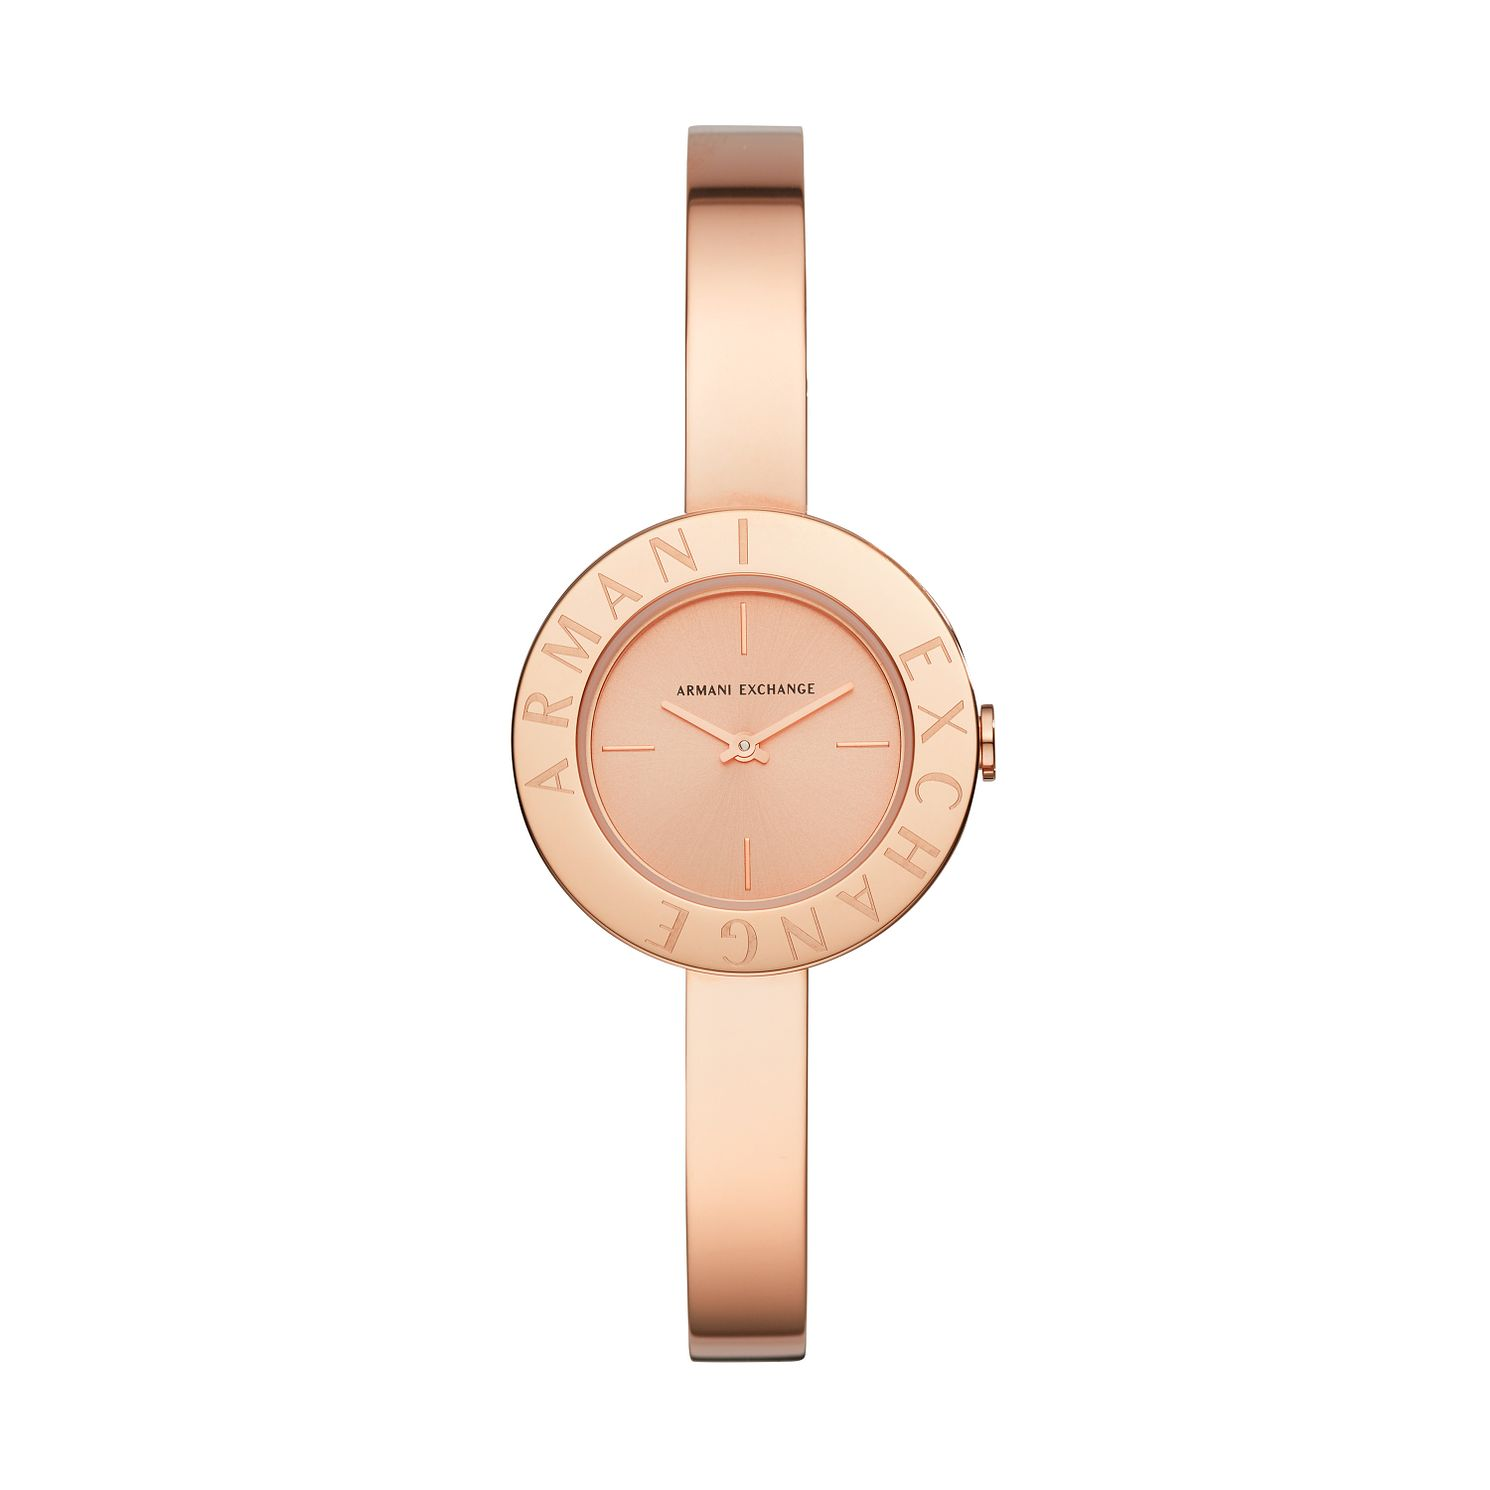 Armani Exchange Ladies' Rose Gold Tone Bracelet Watch - Product number 4852613